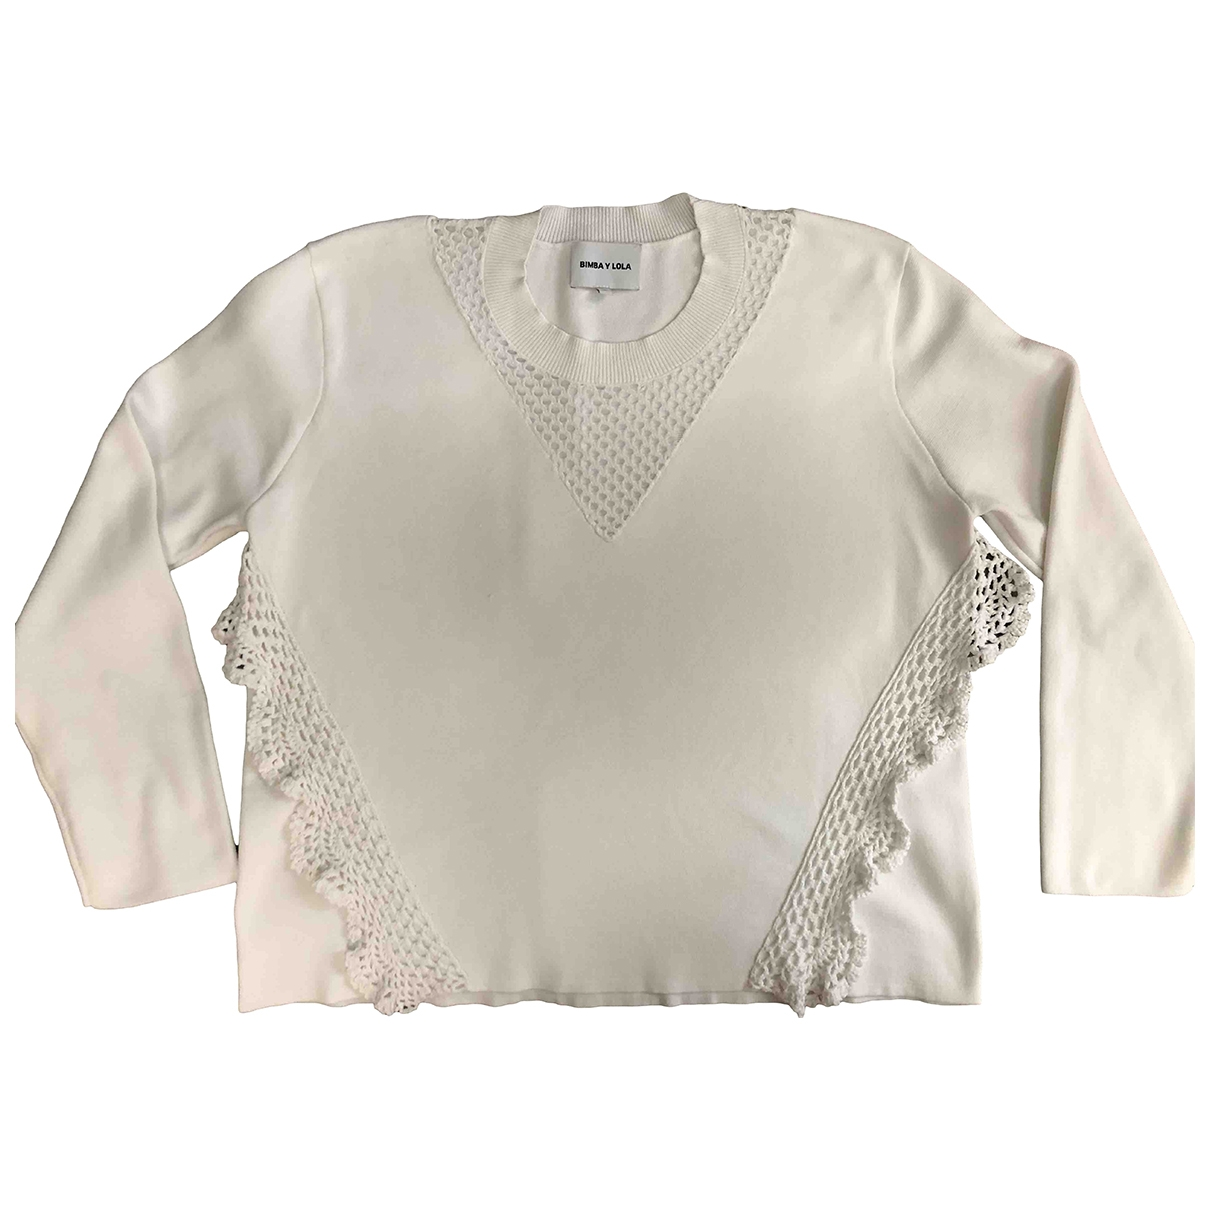 Bimba Y Lola \N White  top for Women M International